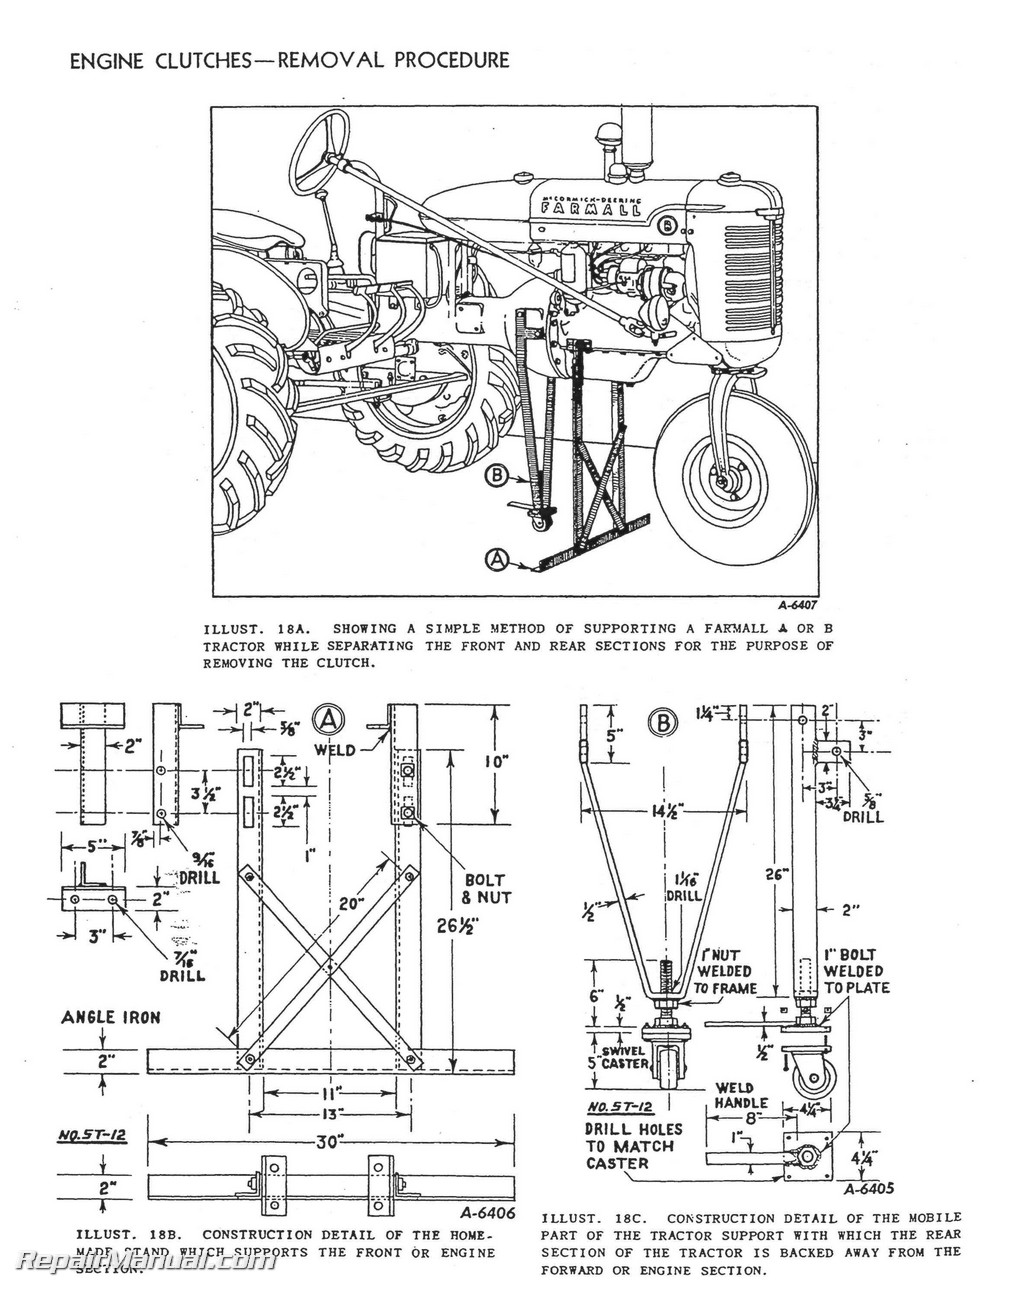 hight resolution of international harvester farmall tractor engine clutch cub cadet 1641 wiring diagram cub cadet 1650 wiring diagram